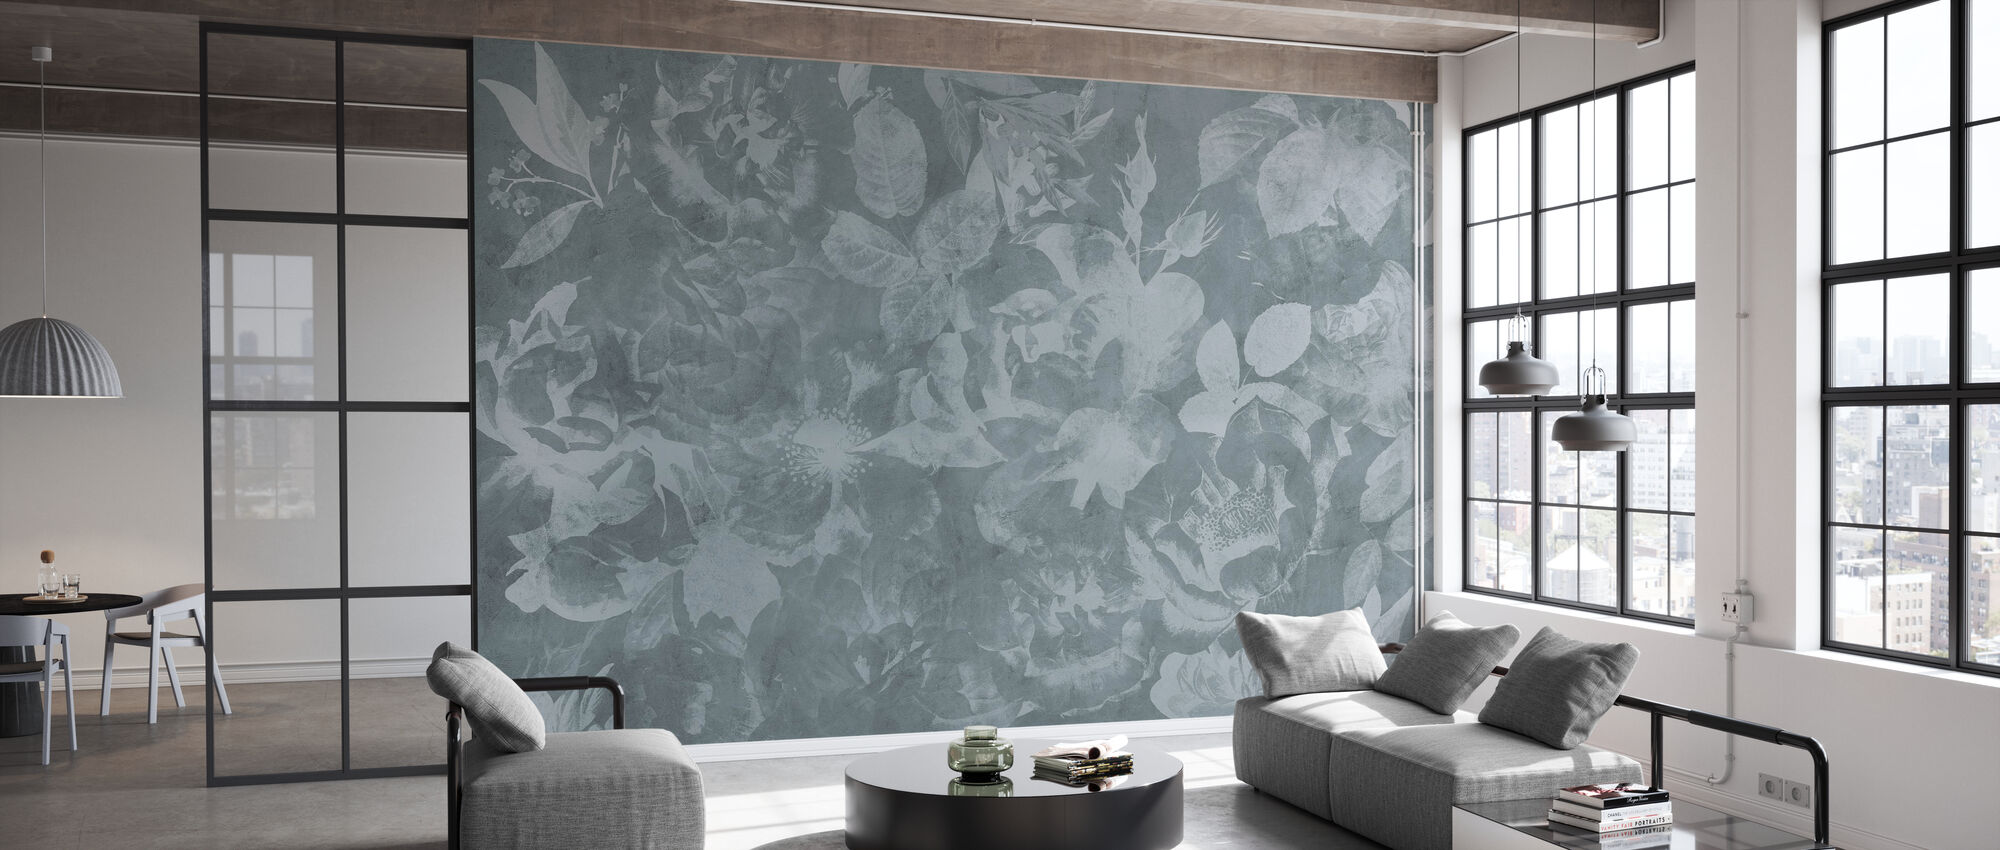 Flowers and Concrete - Gray - Wallpaper - Office